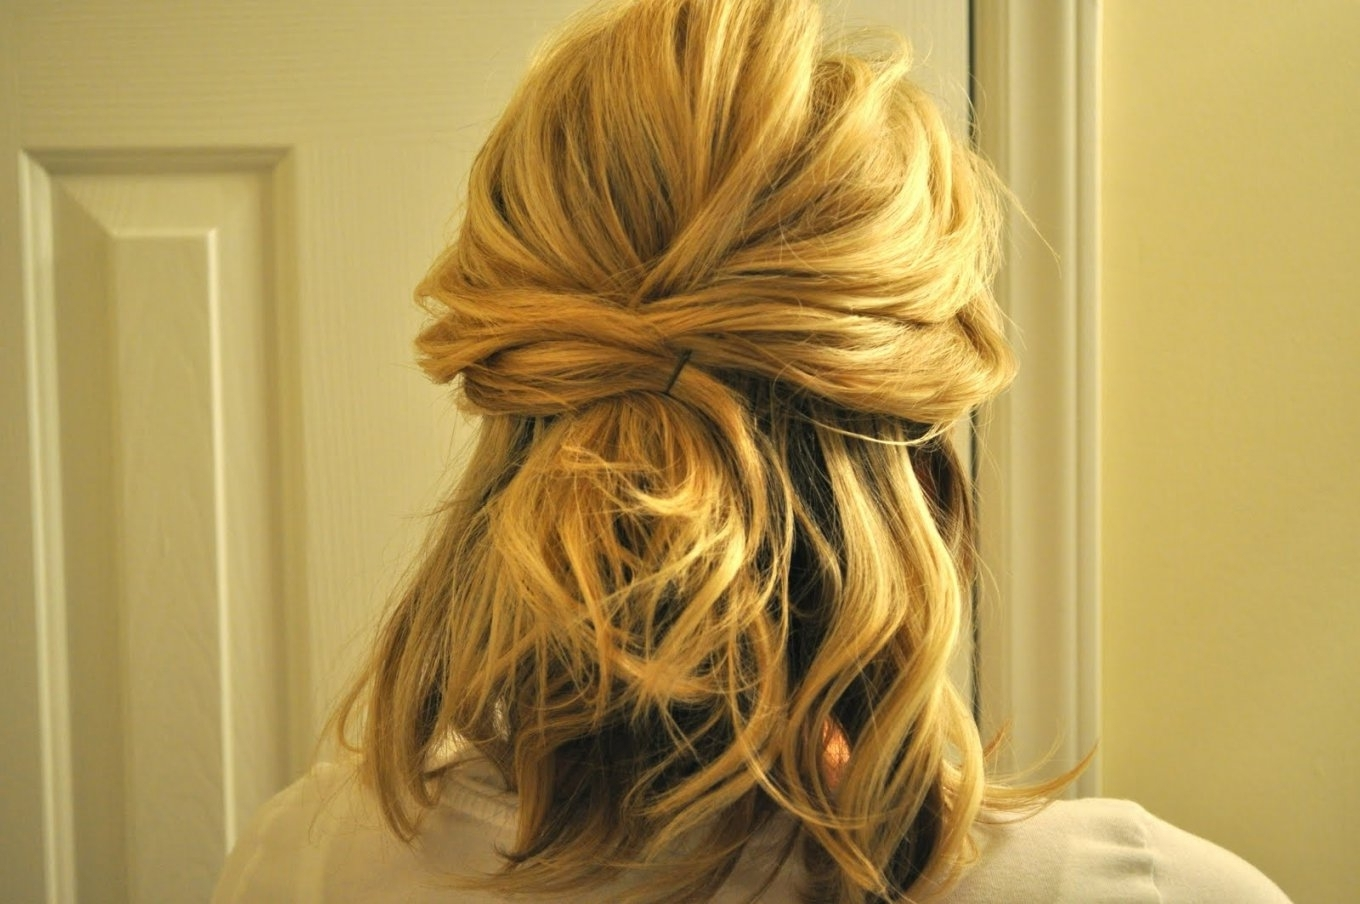 Up Wedding Hairstyles Medium Length Hair Half Up To Full Updo (View 10 of 15)